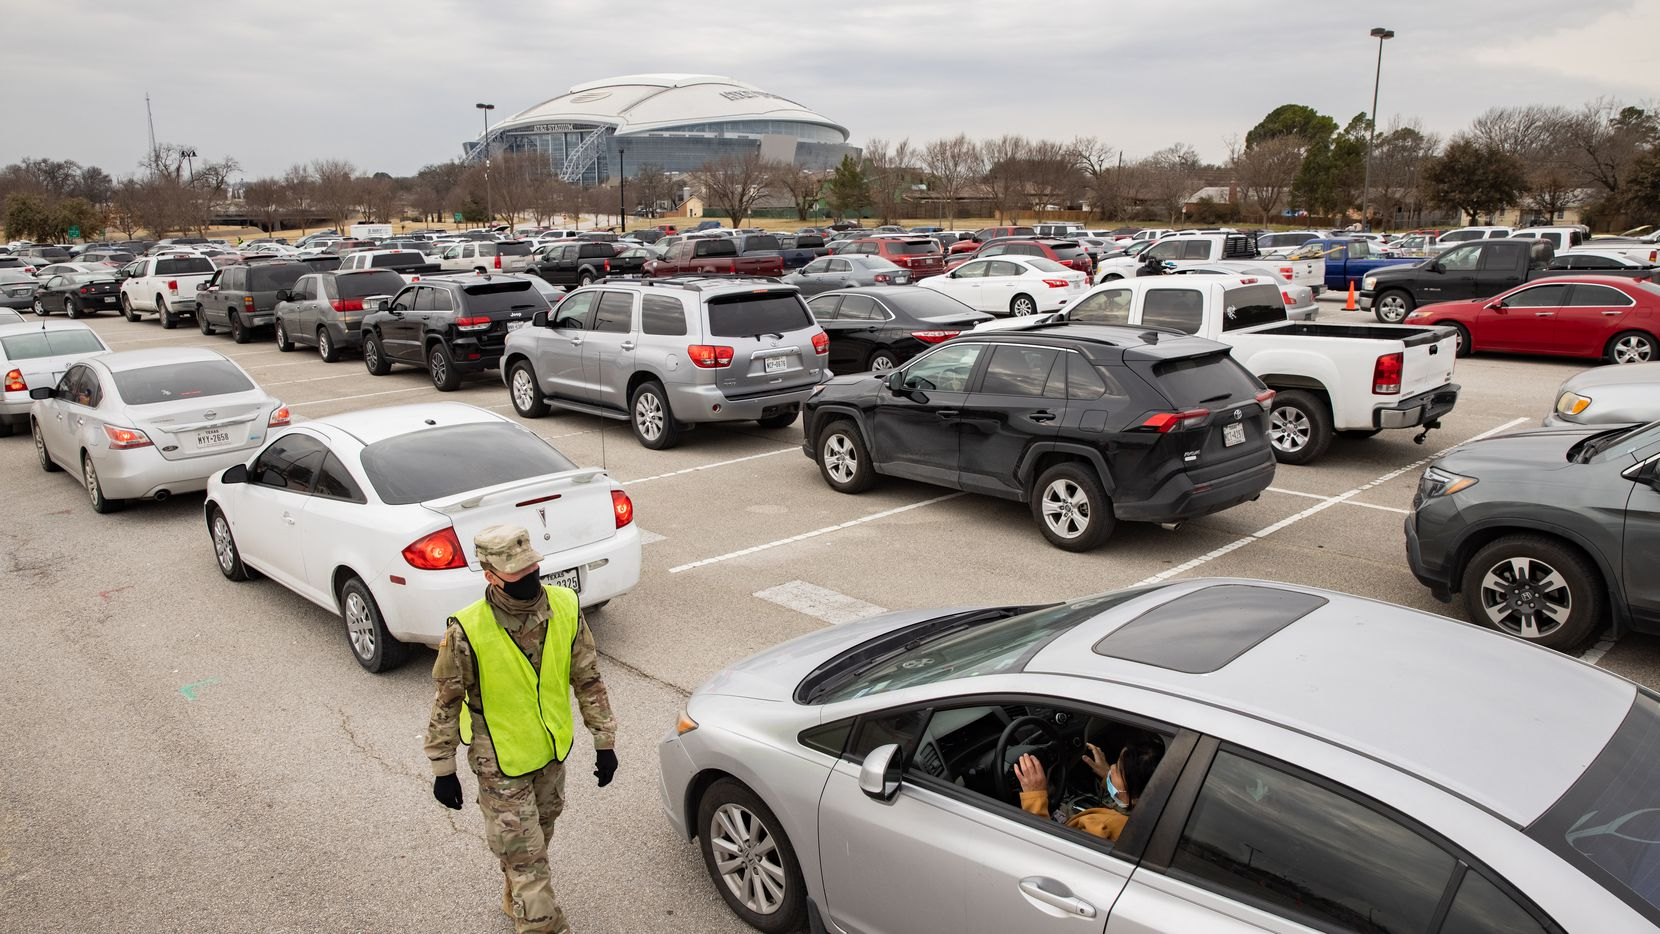 People wait in line to receive food from the Tarrant Area Food Bank in the parking lot of Globe Life Field in Arlington on Thursday, Feb. 25, 2021.